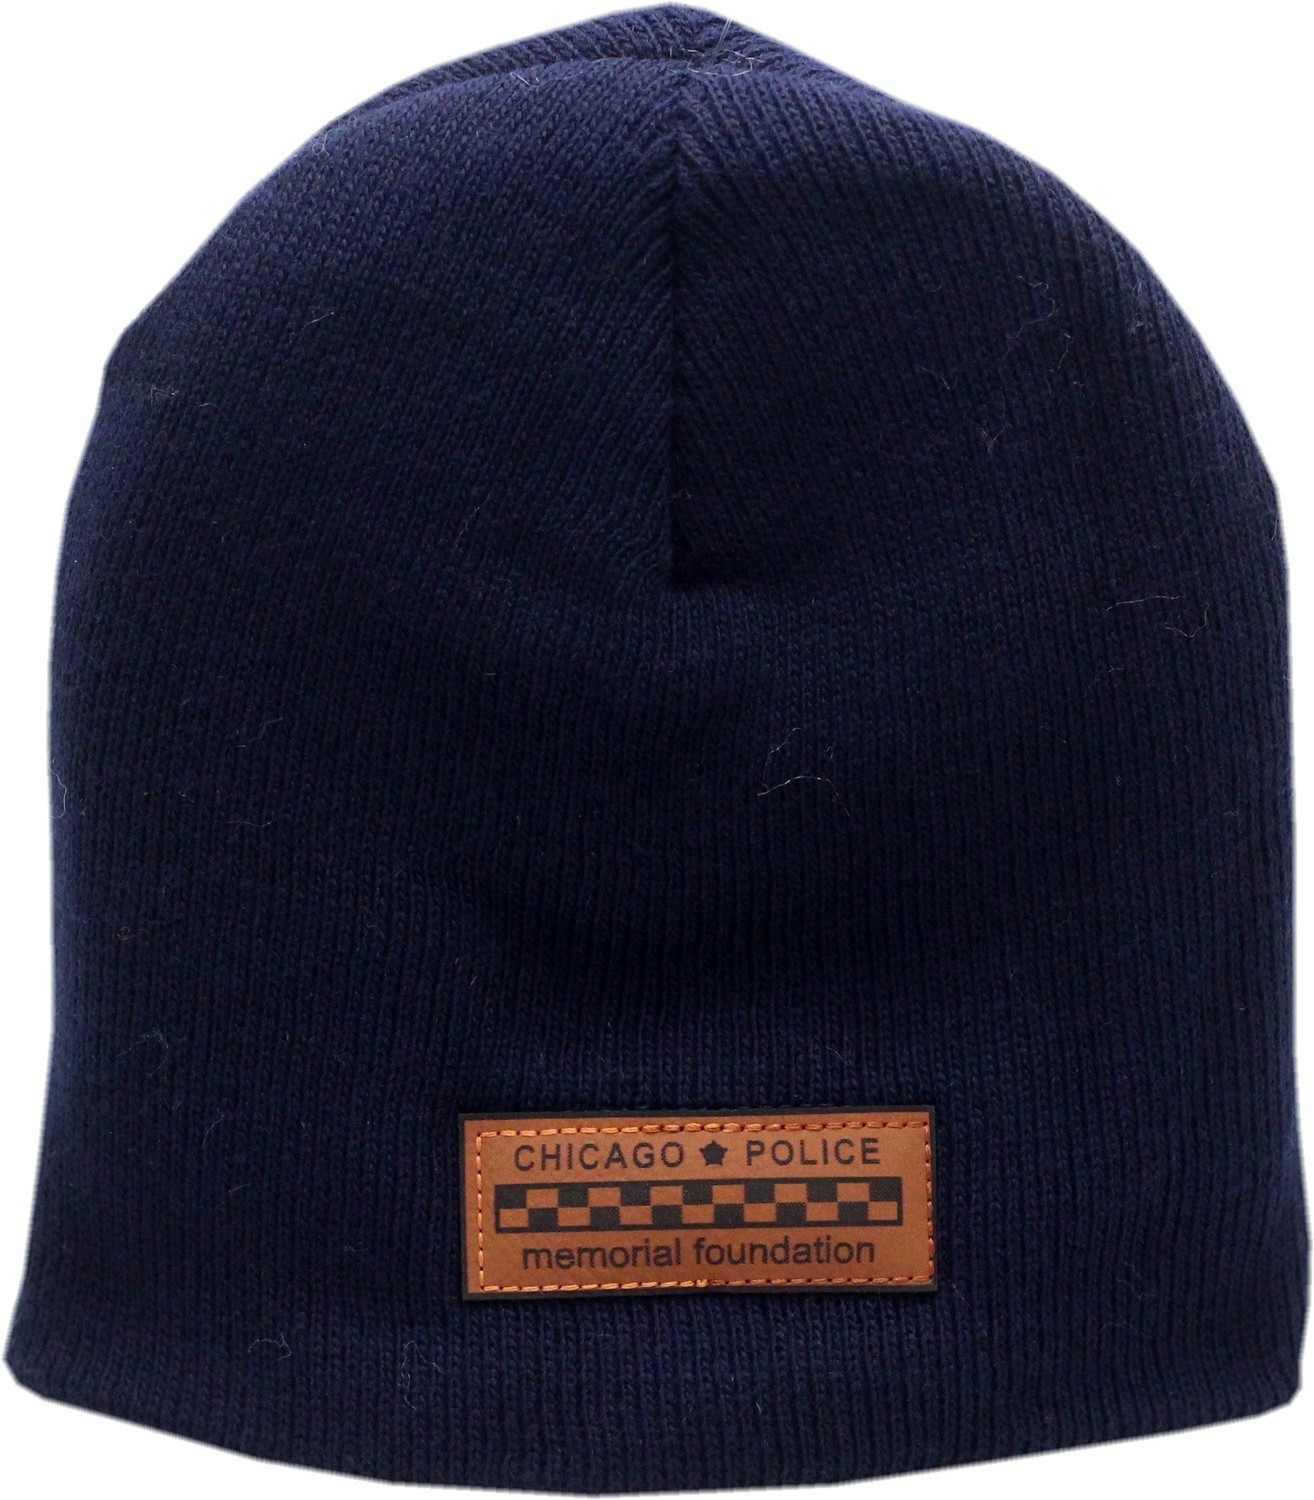 CPD Memorial Foundation Skull Knit Hat Bar Patch Navy